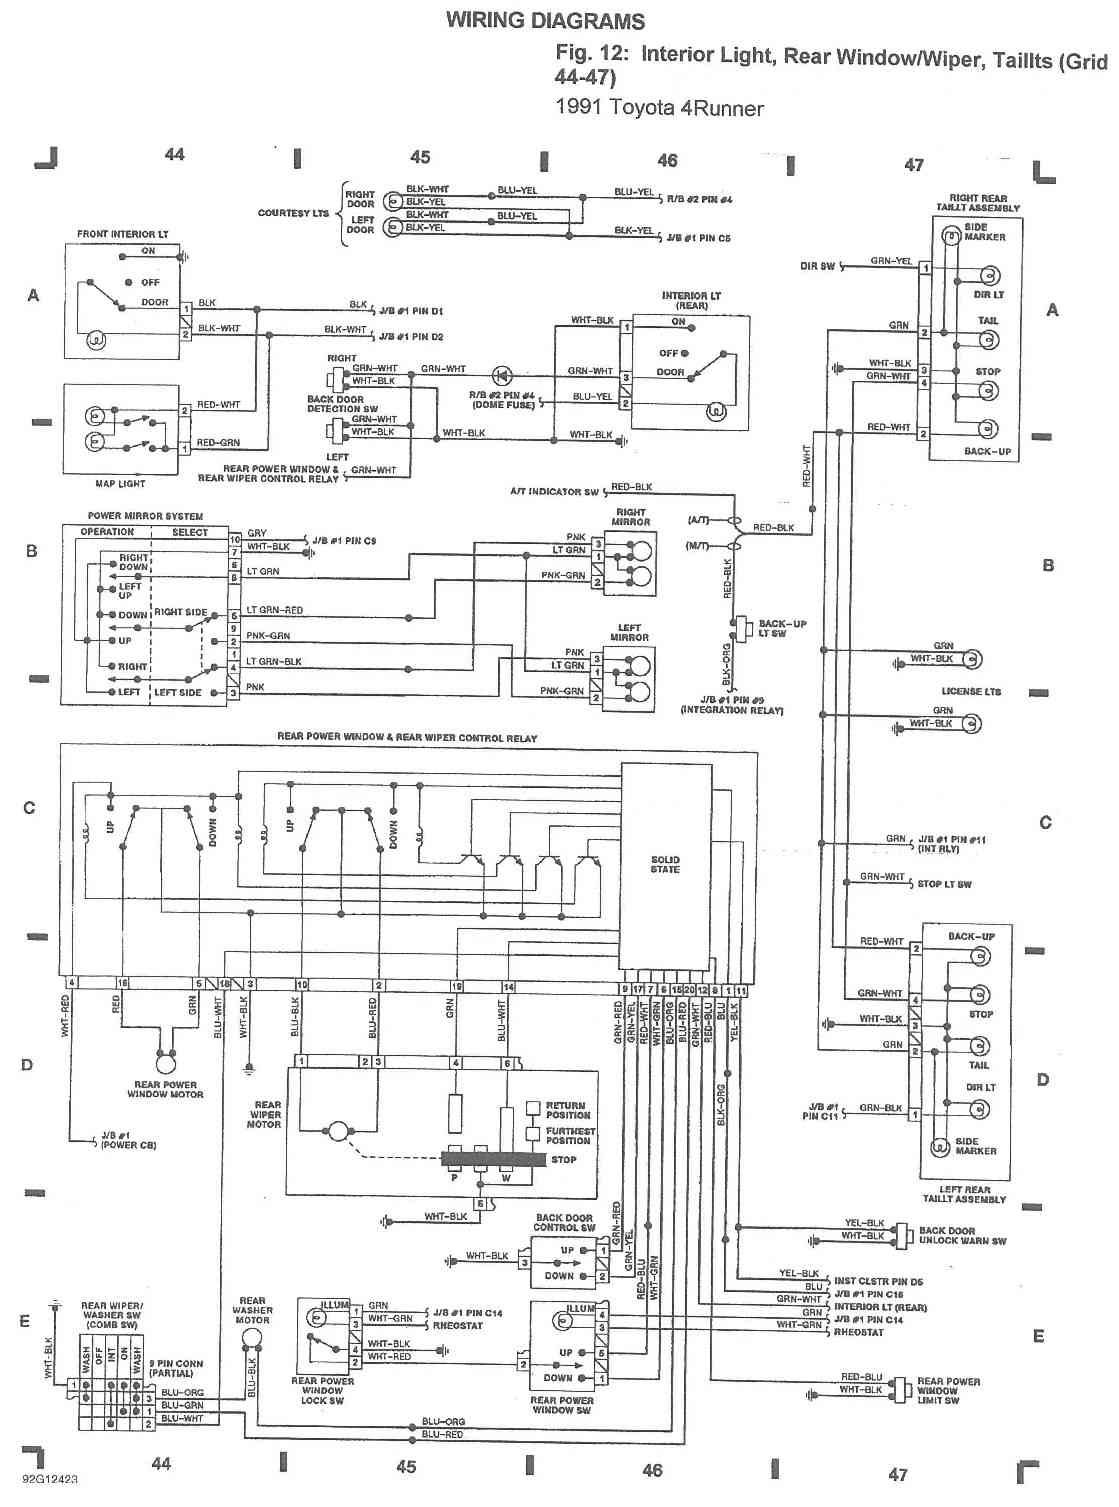 1996 4runner Wiring Diagram Real 94 Aerostar Fuse Box Ford Free Engine Toyota Spark Plug